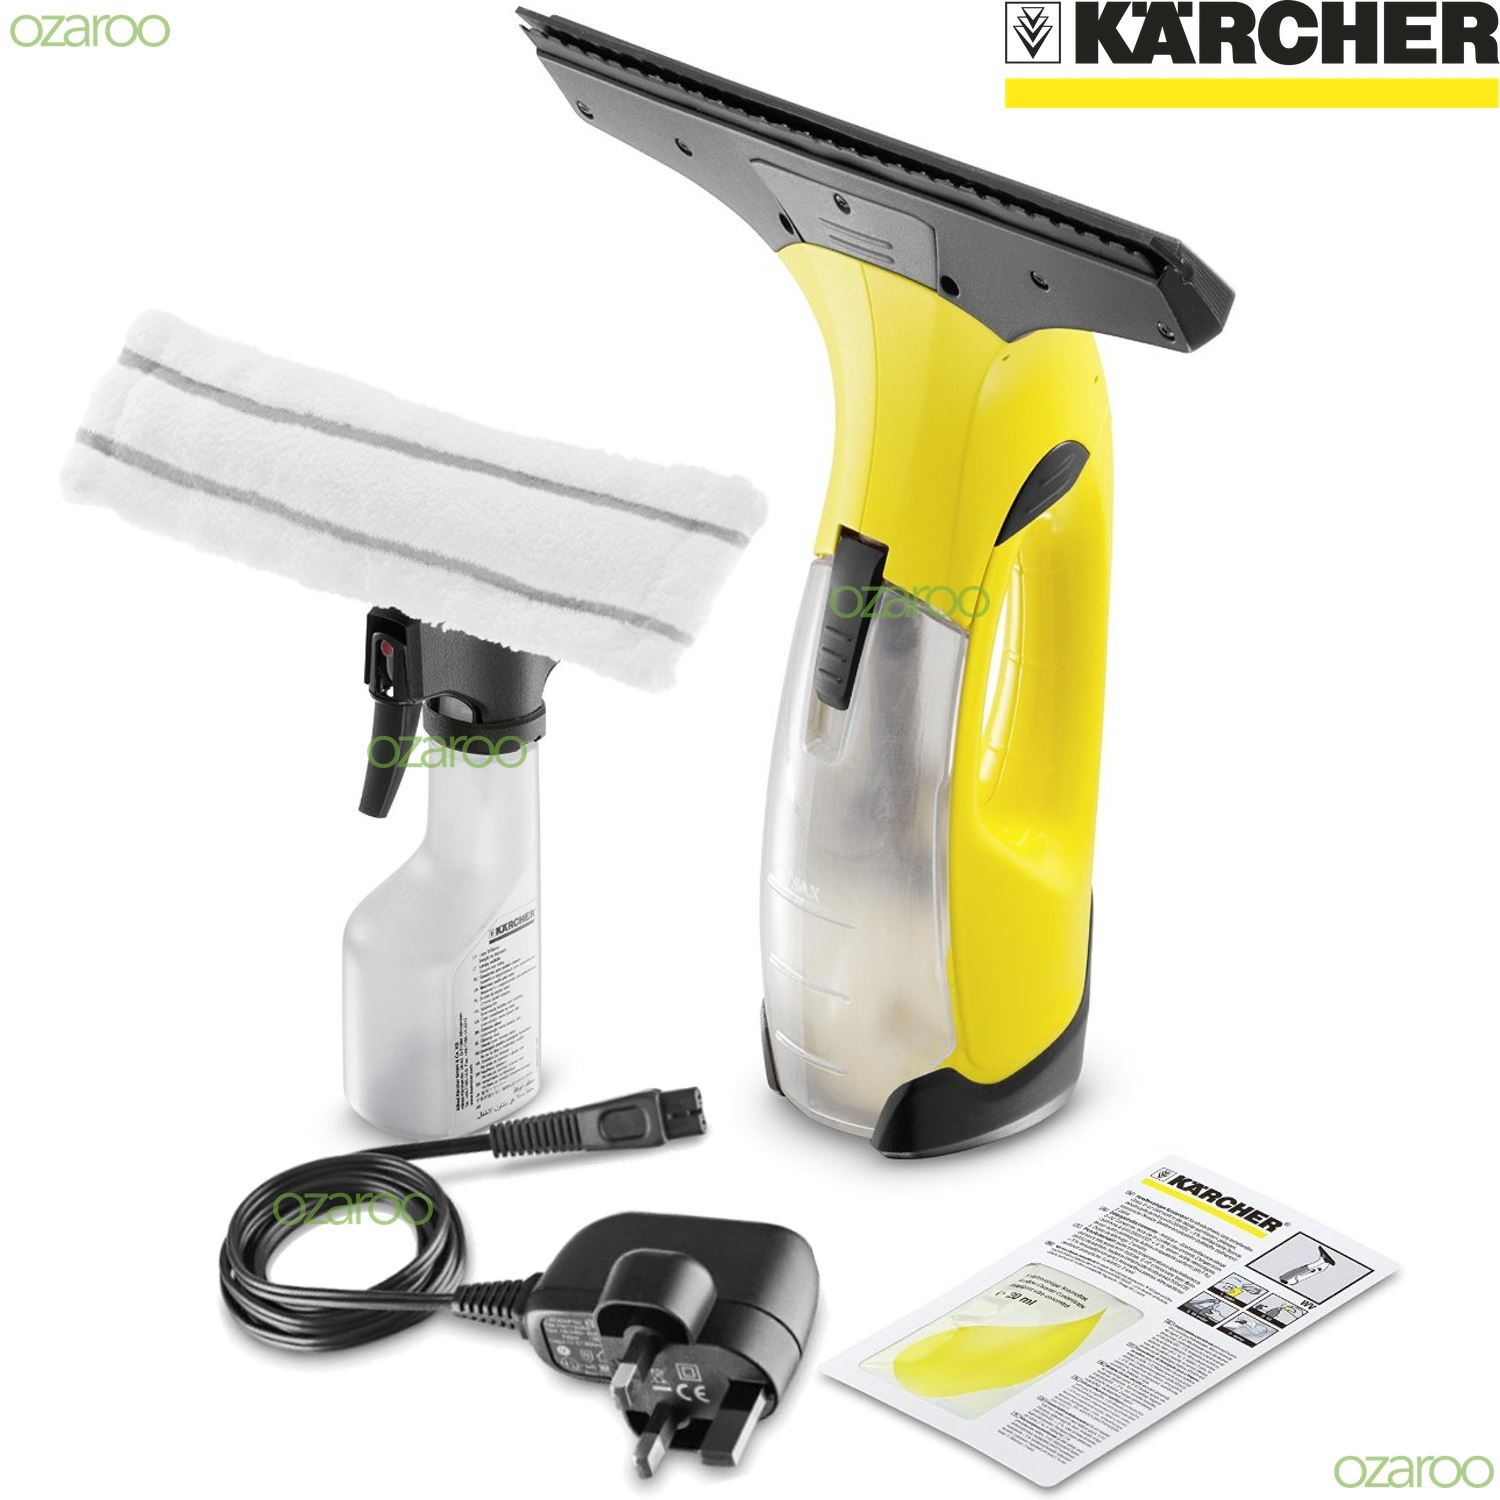 karcher window cleaner concentrate instructions